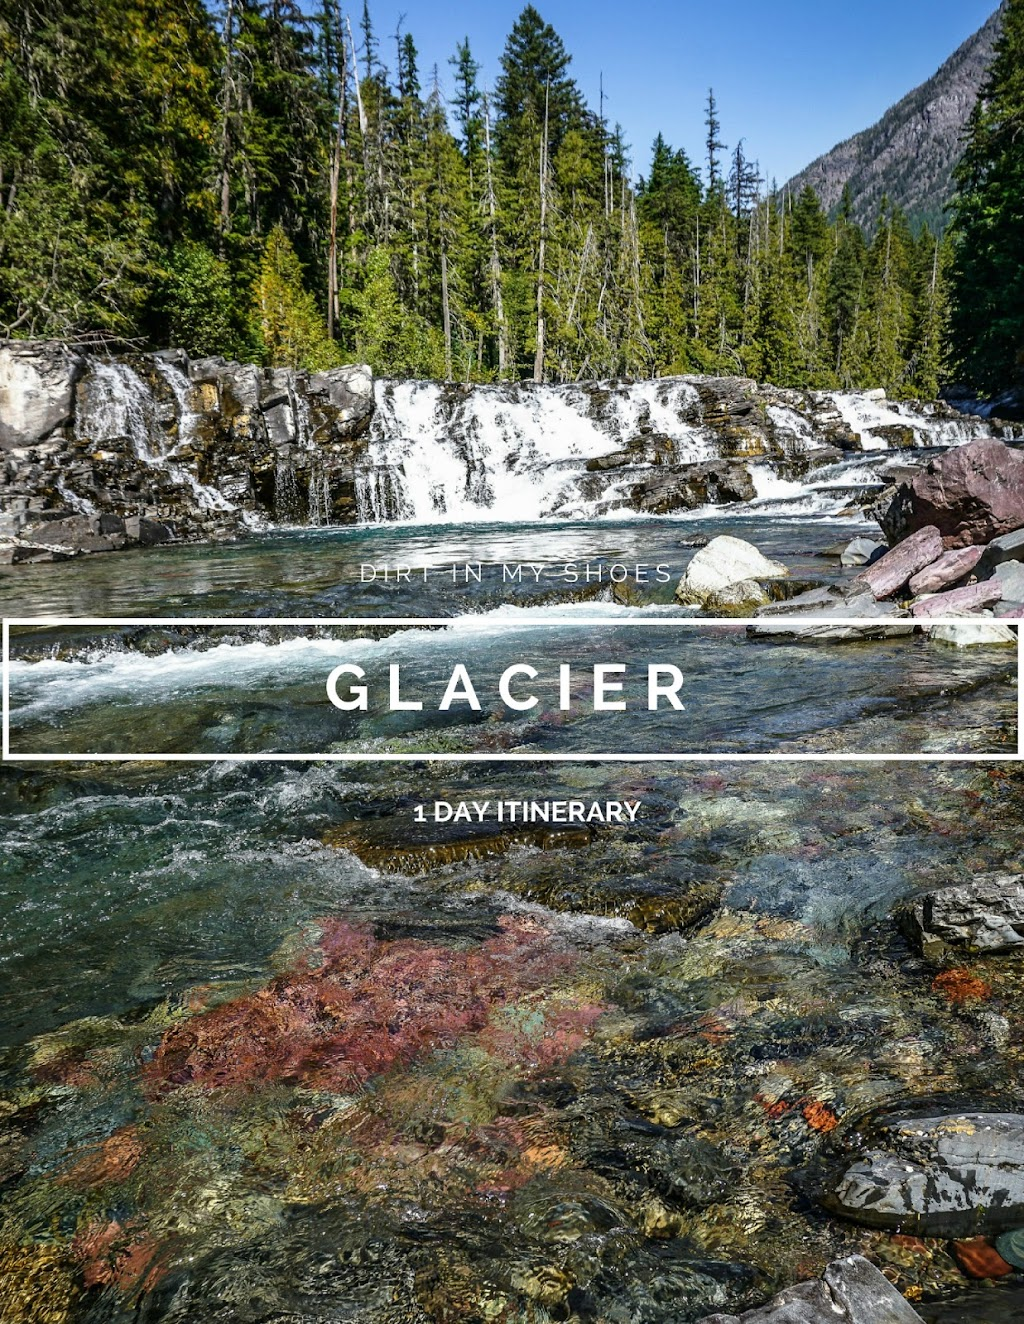 Glacier 1 Day Itinerary || Dirt In My Shoes